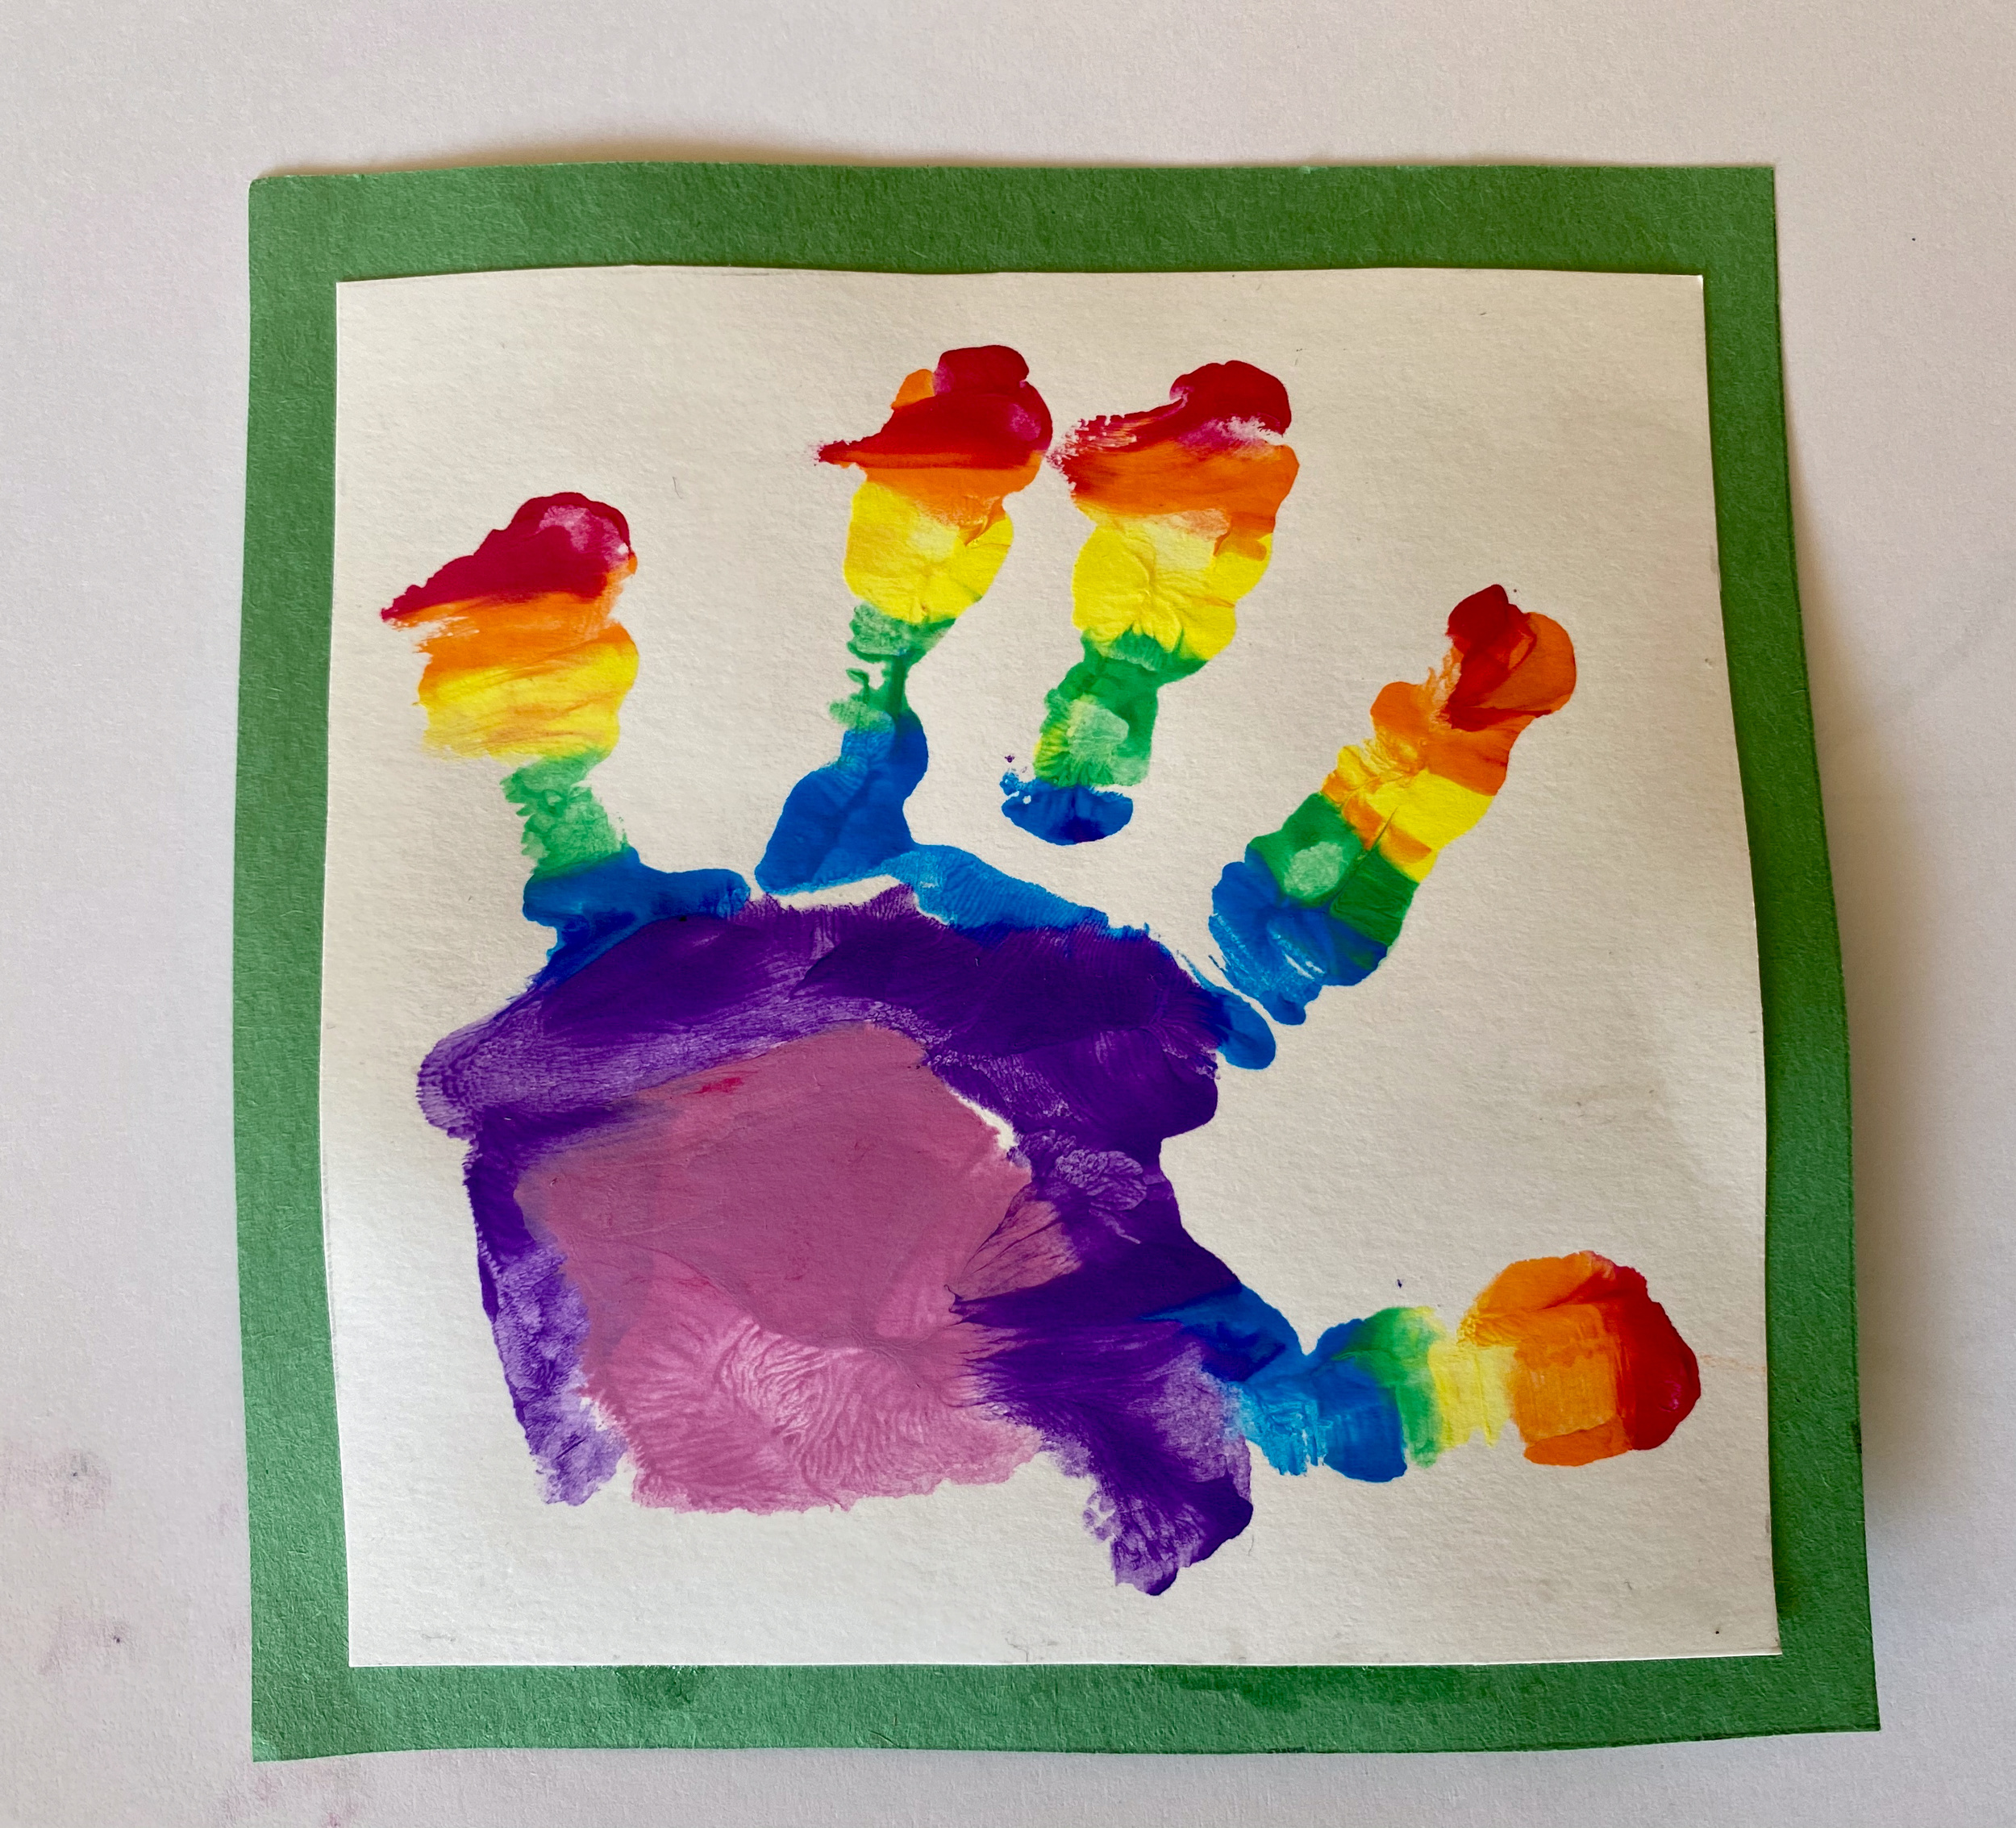 Prince Louis' rainbow handprint poster - a symbol of hope. Duchess of Cambridge